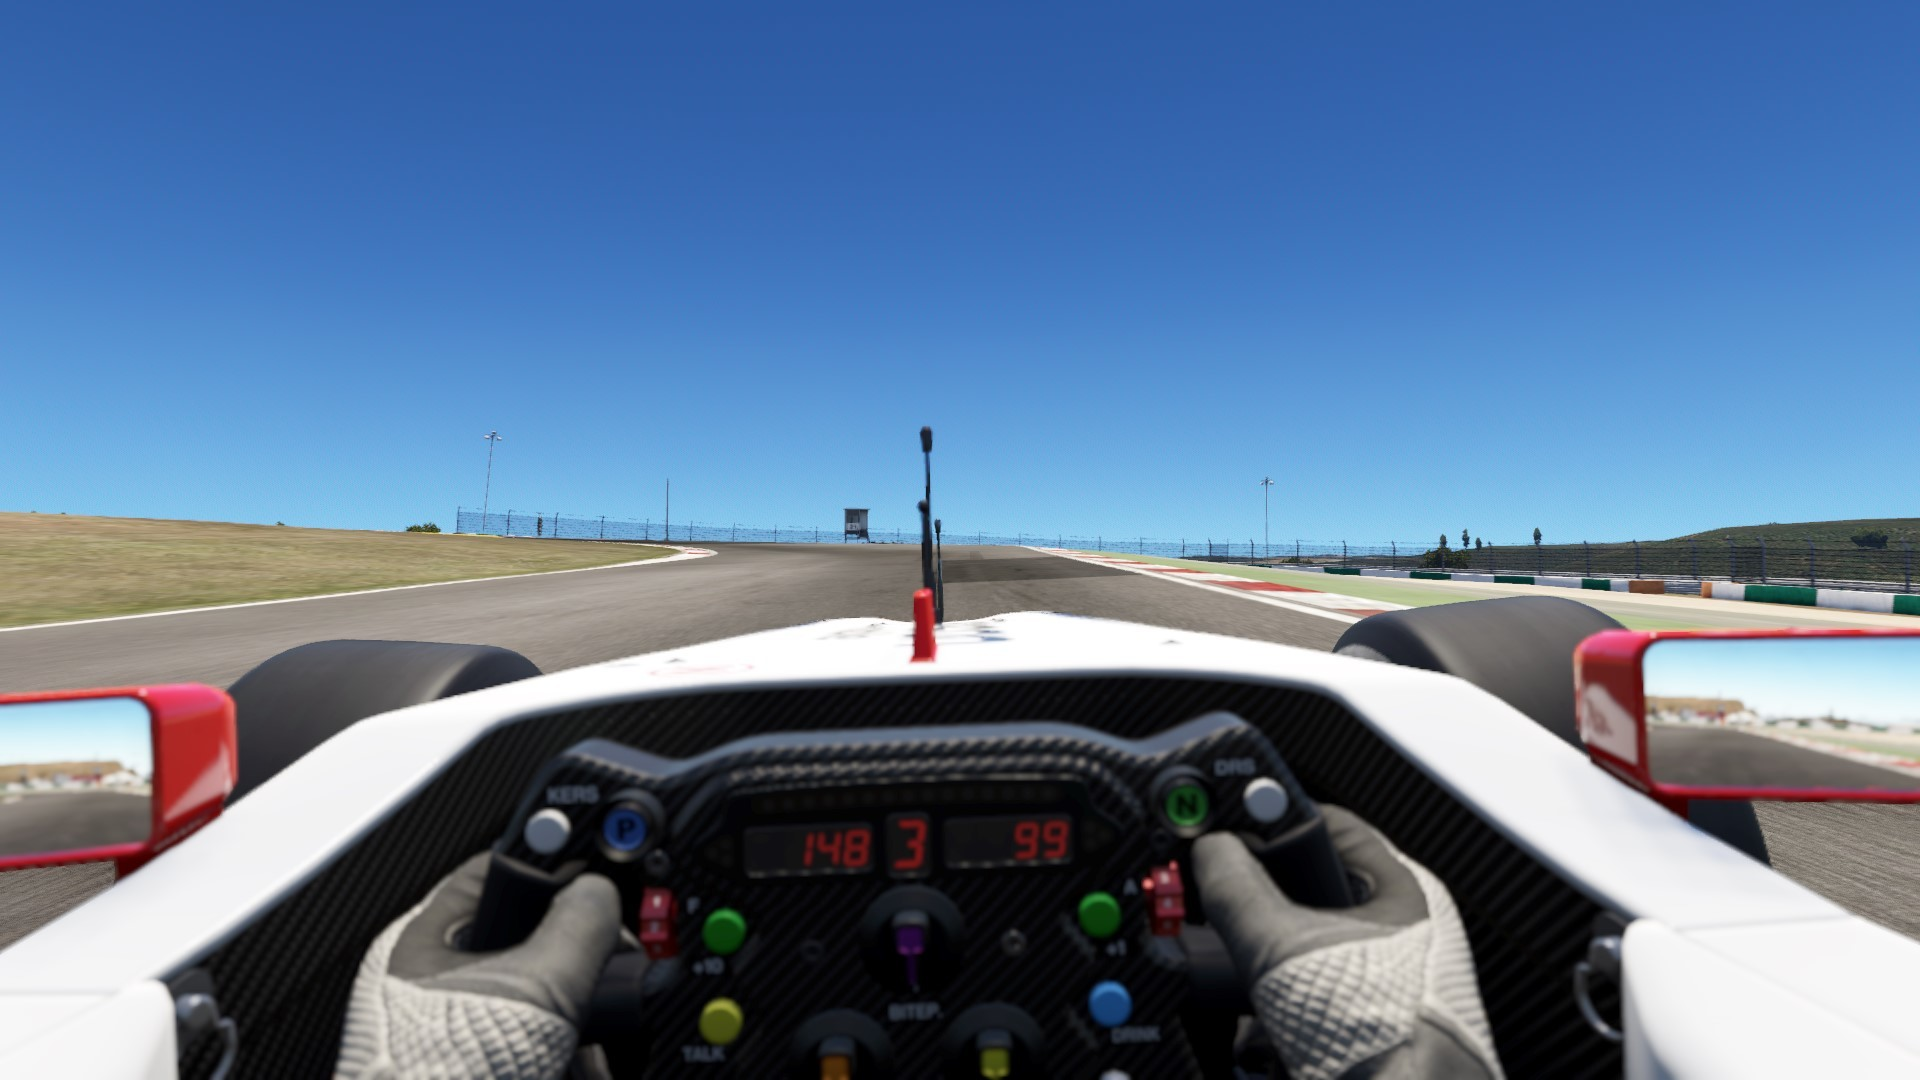 cockpit view when arriving at turn 13